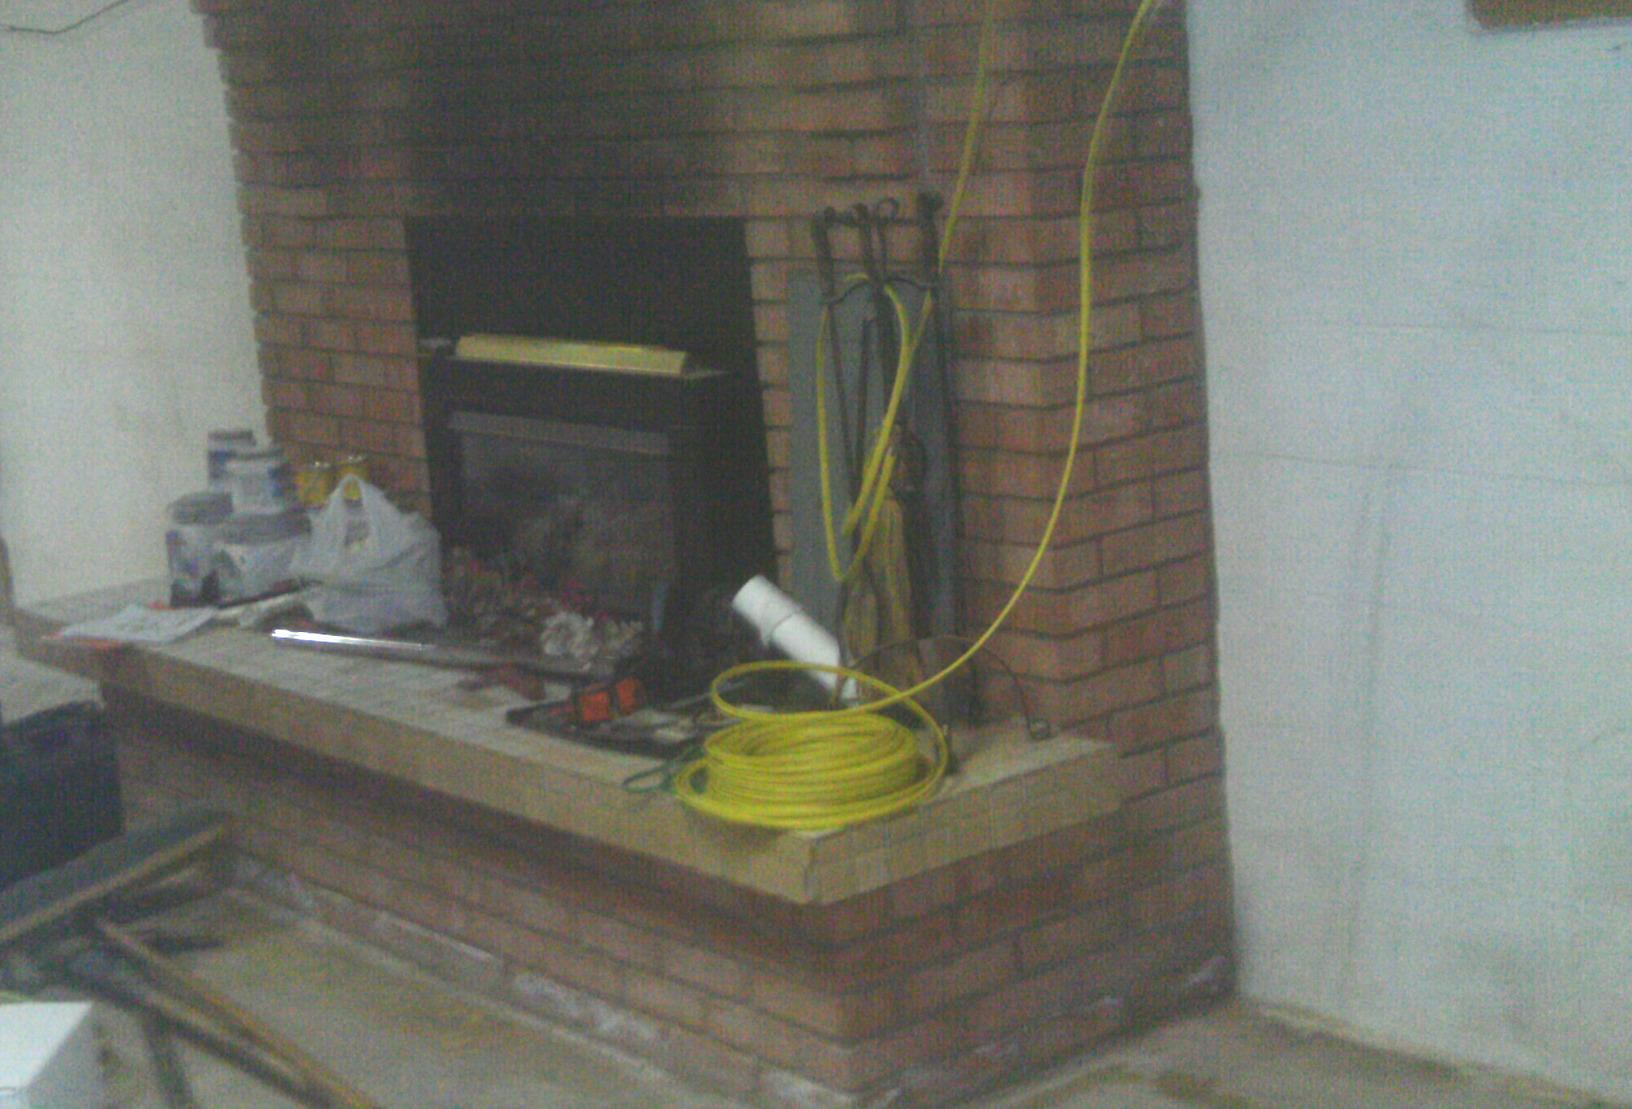 The difference between other companies and MidAmerica Basement SYste